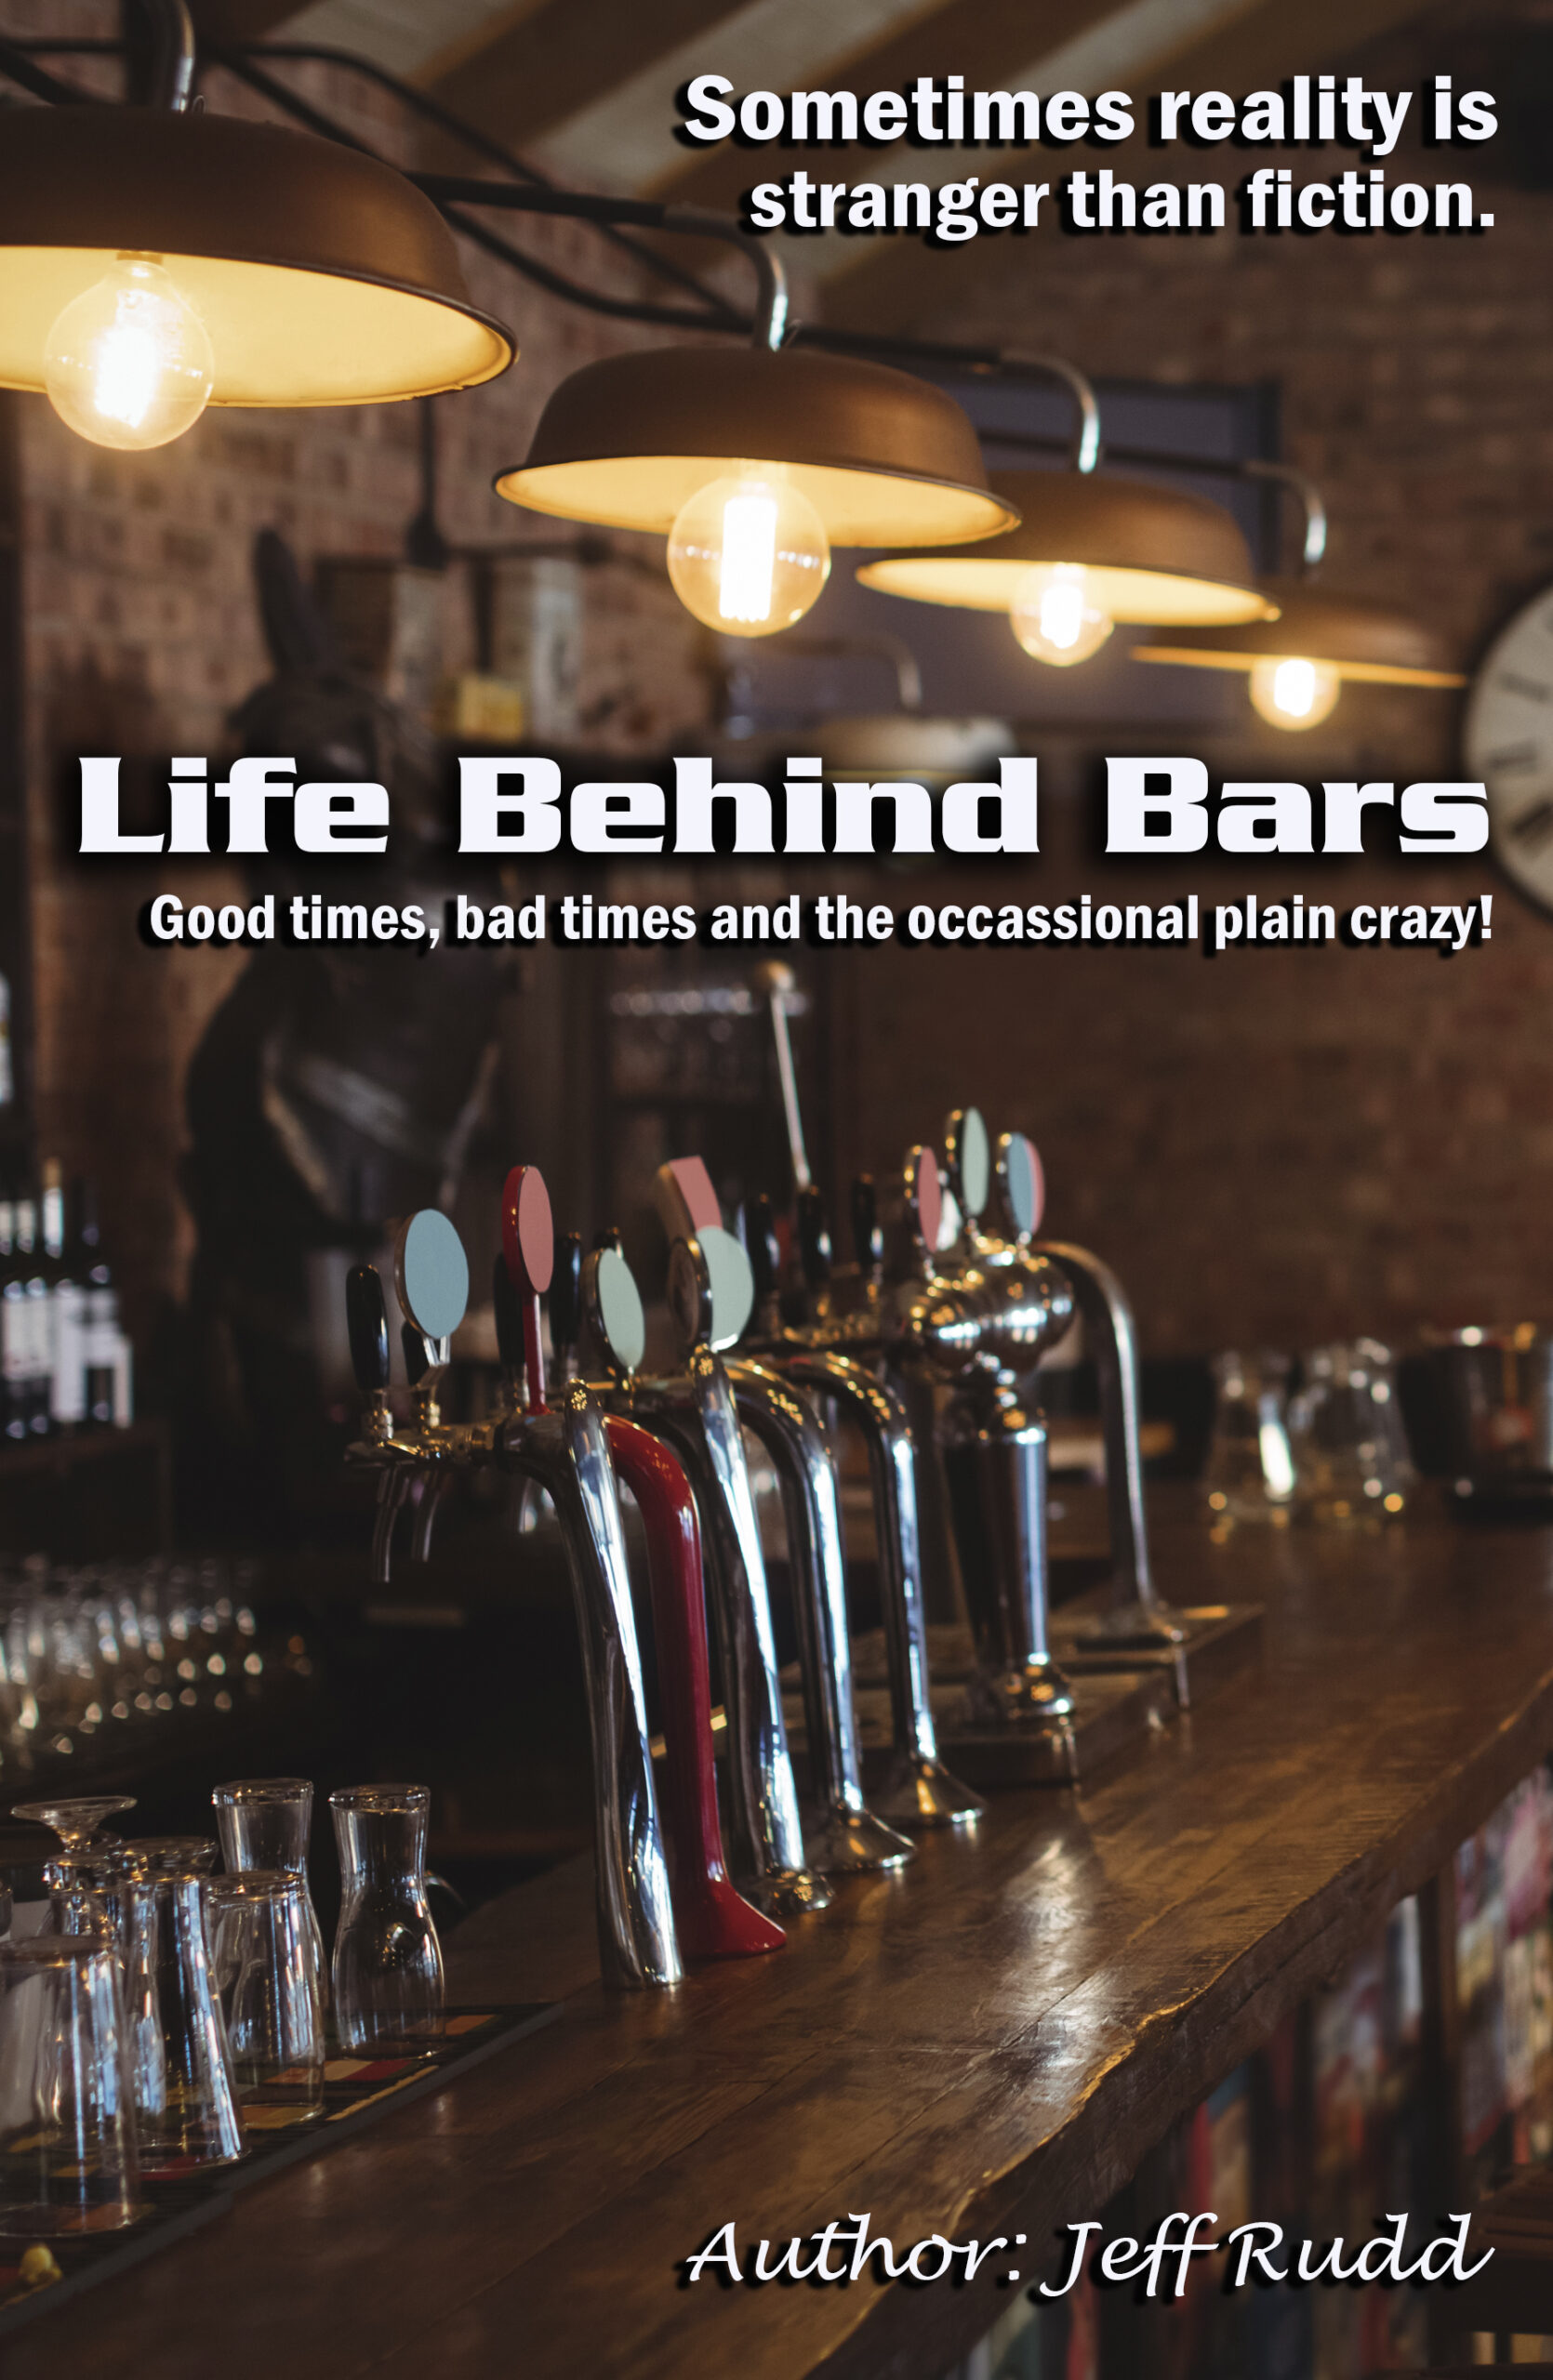 Life behind bars cover 2a